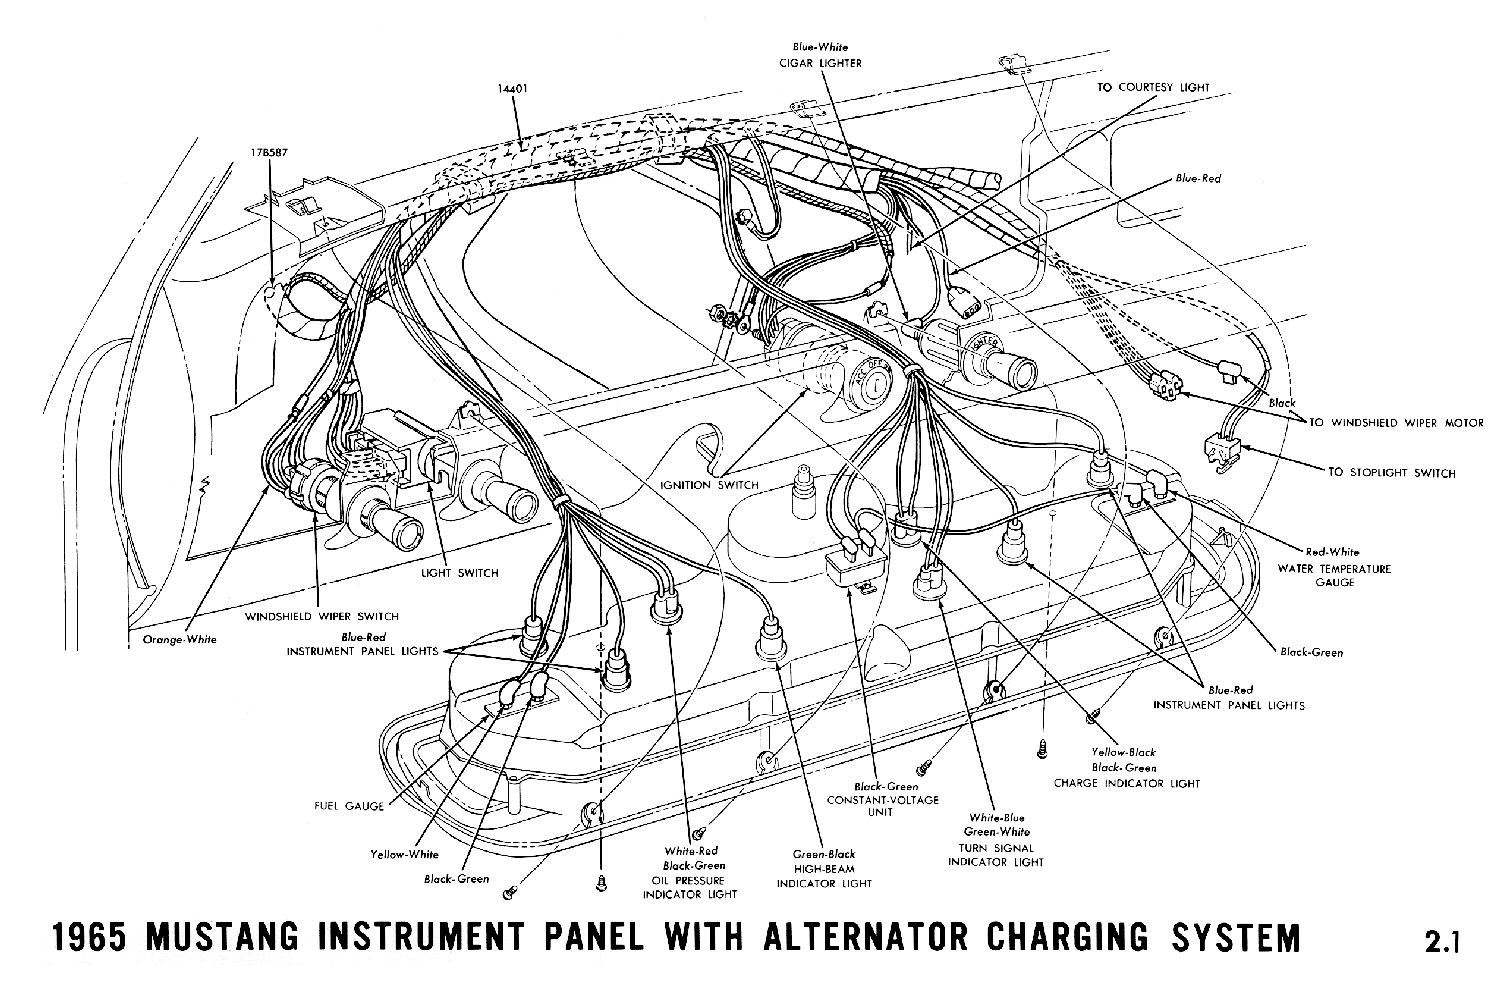 Gas Gage Wiring Diagram 2005 Ford Mustang Diy Enthusiasts 2004 1965 Diagrams Average Joe Restoration Rh Averagejoerestoration Com Escape Radio